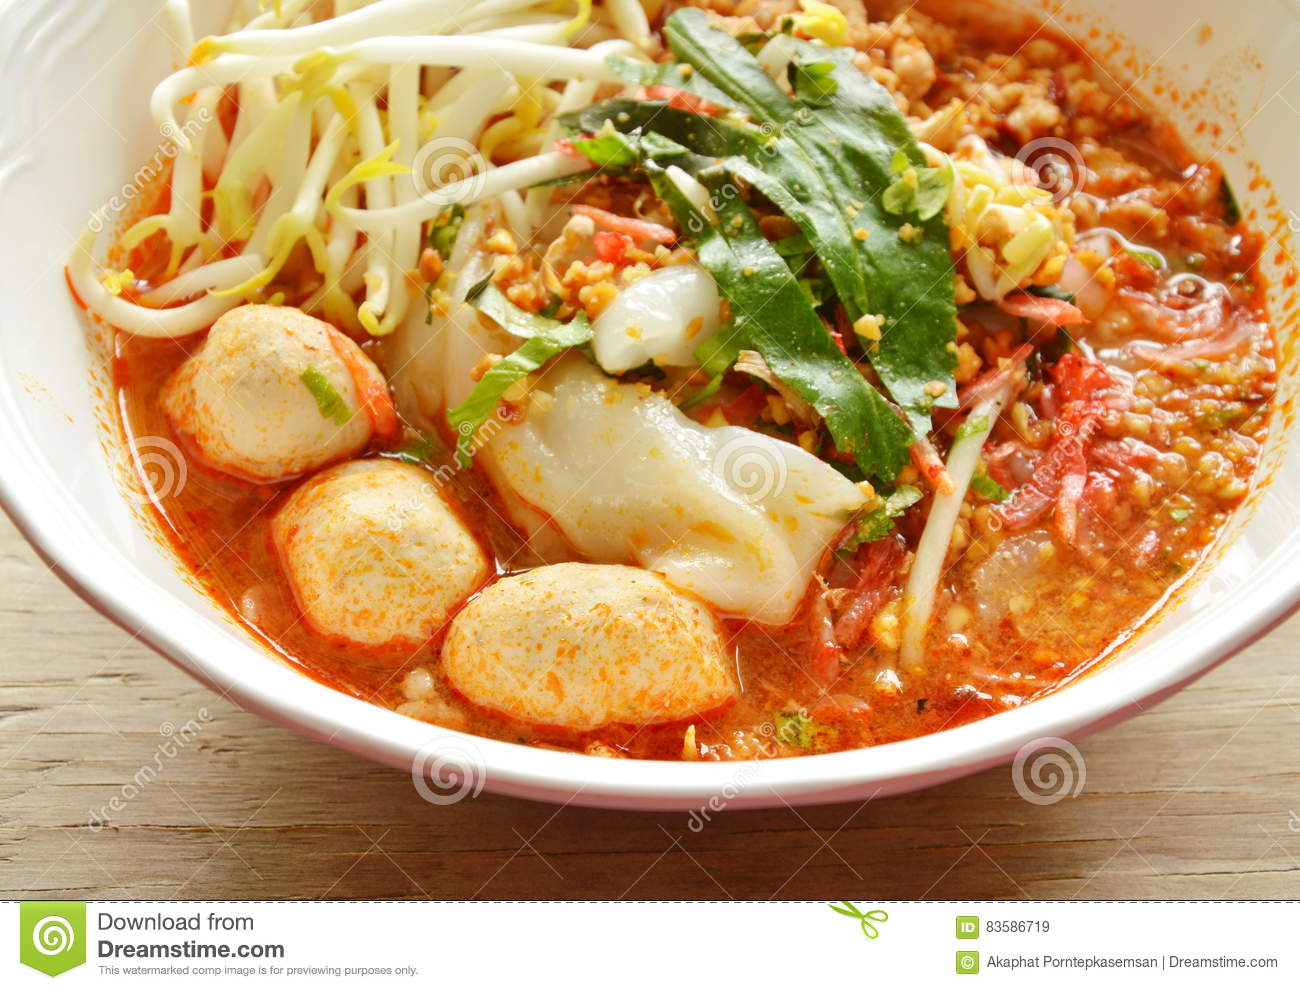 Rice Noodle With Pork Ball In Tom Yum Spicy Soup Topping Raw Bean.